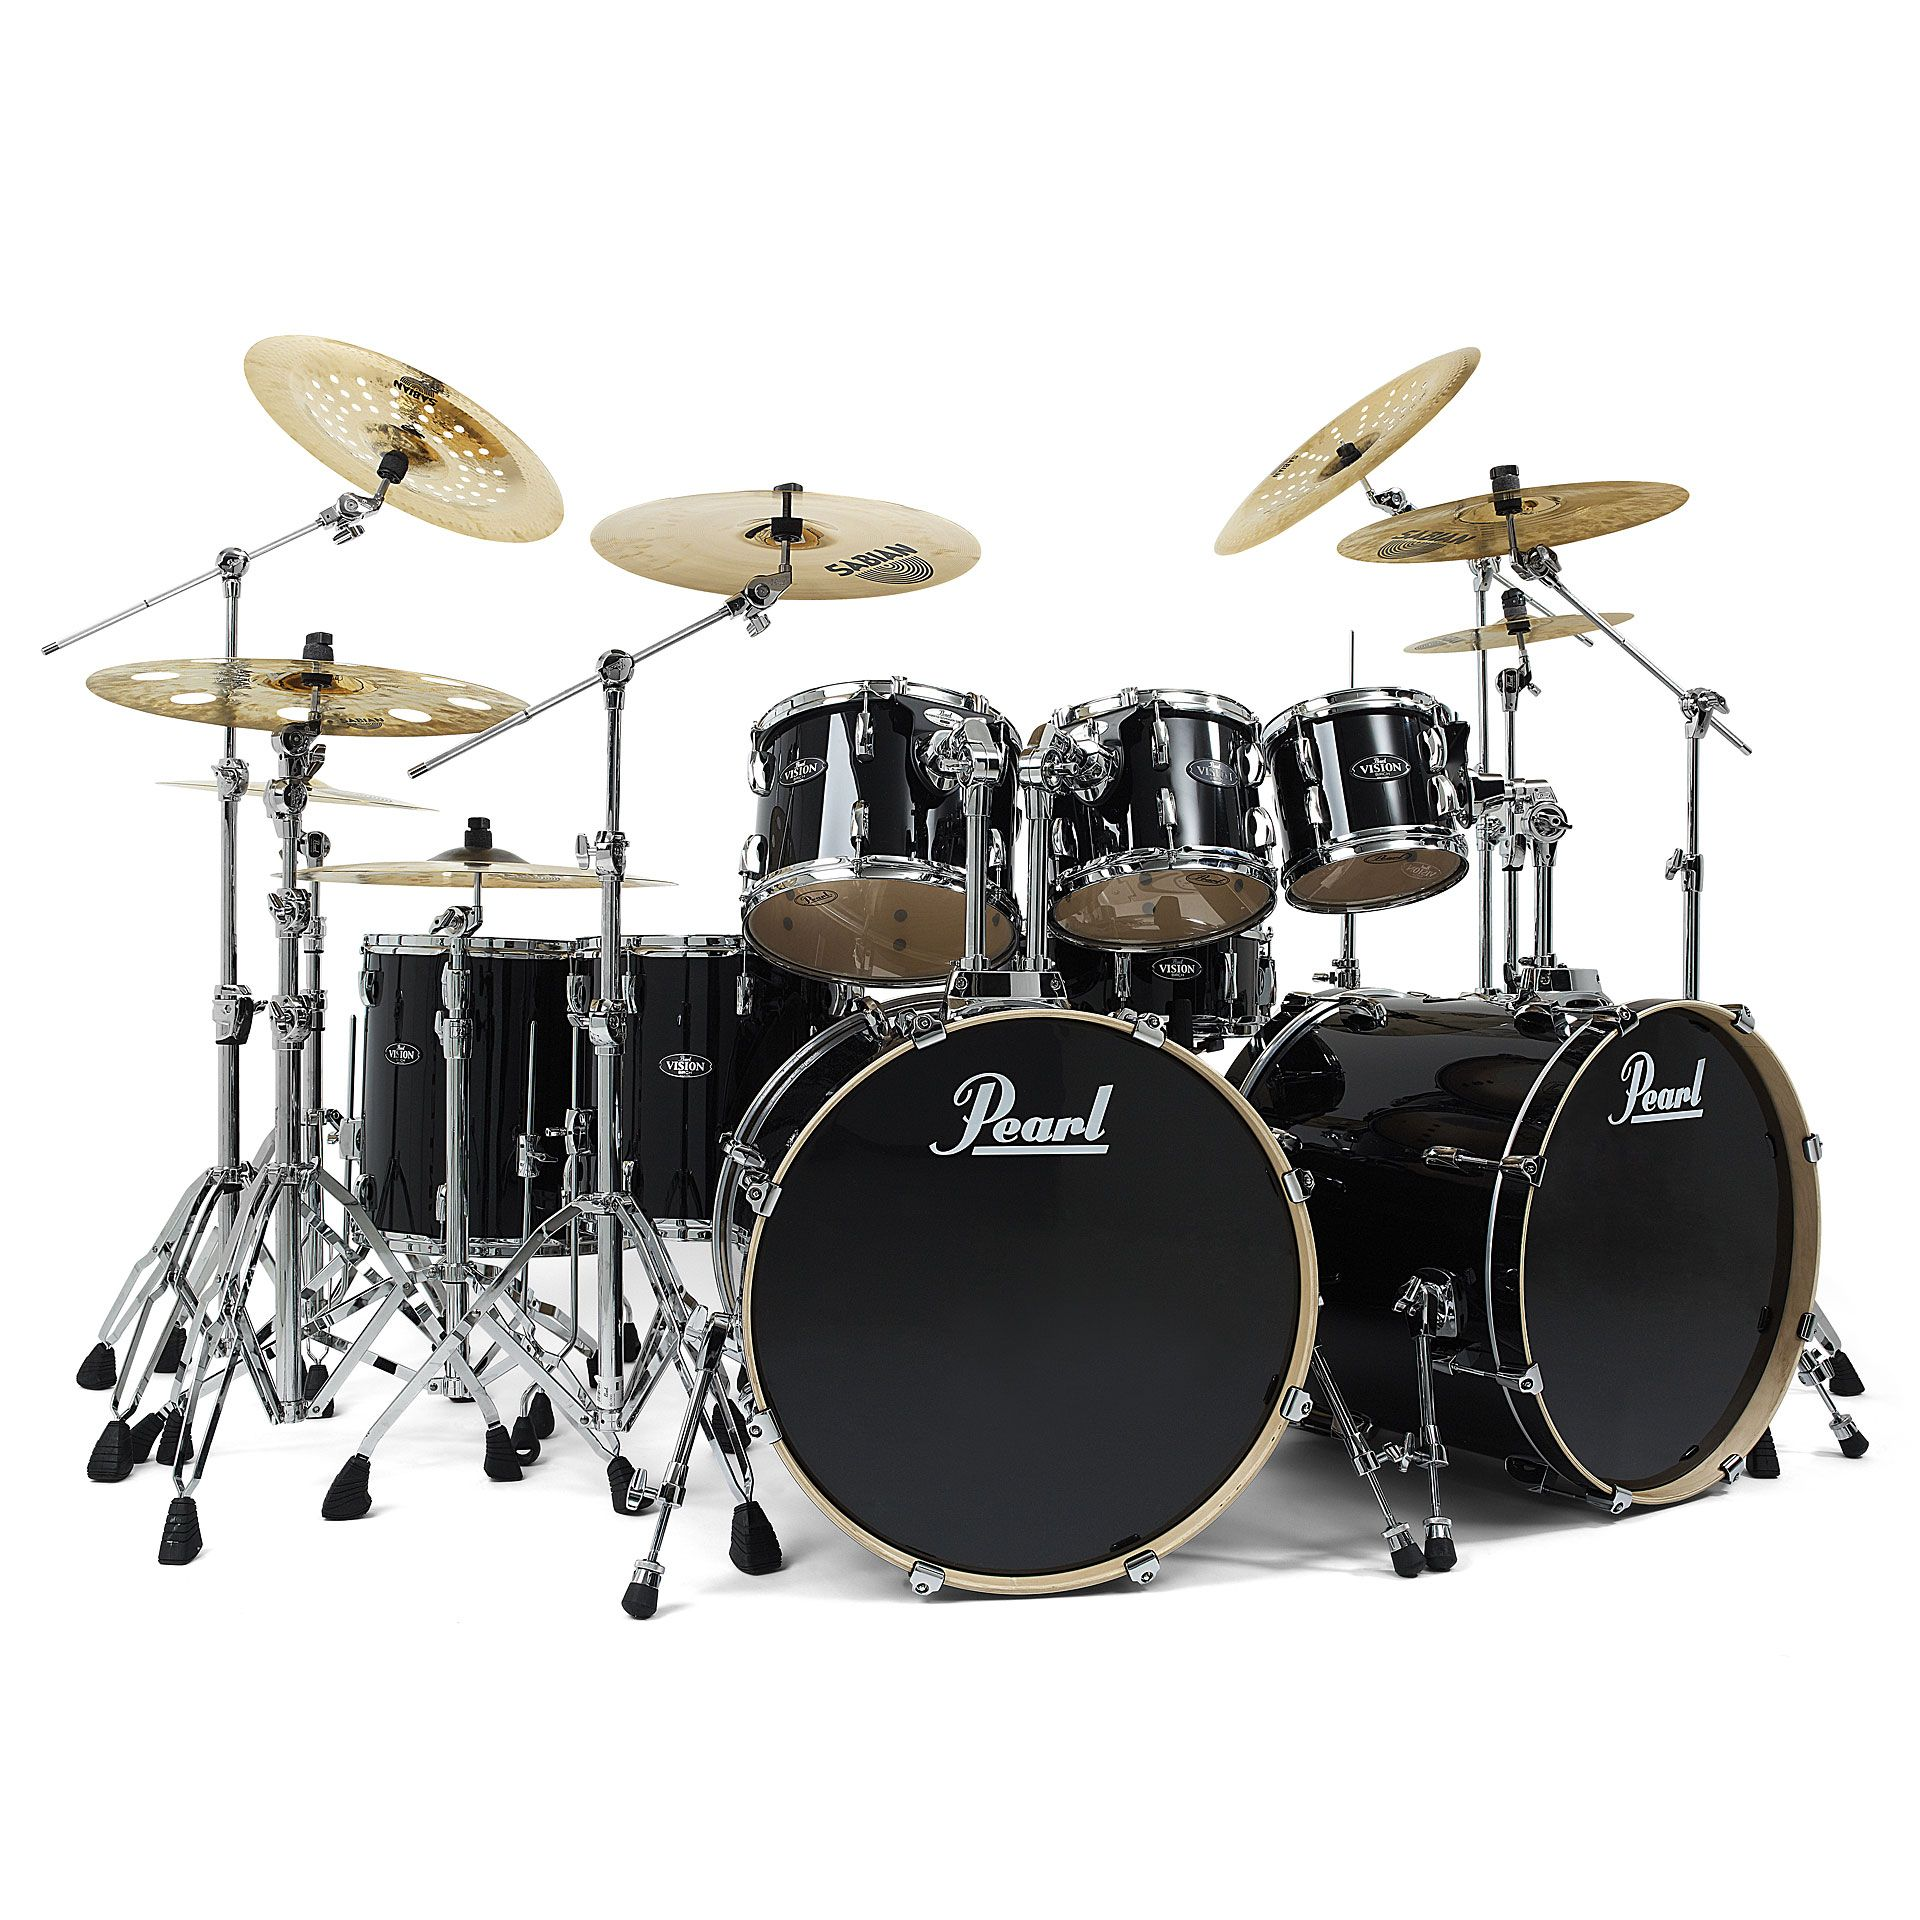 Pearl Drum Sets   home drums and percussion acoustic drums acoustic     Pearl Drum Sets   home drums and percussion acoustic drums acoustic drum  kits all pearl